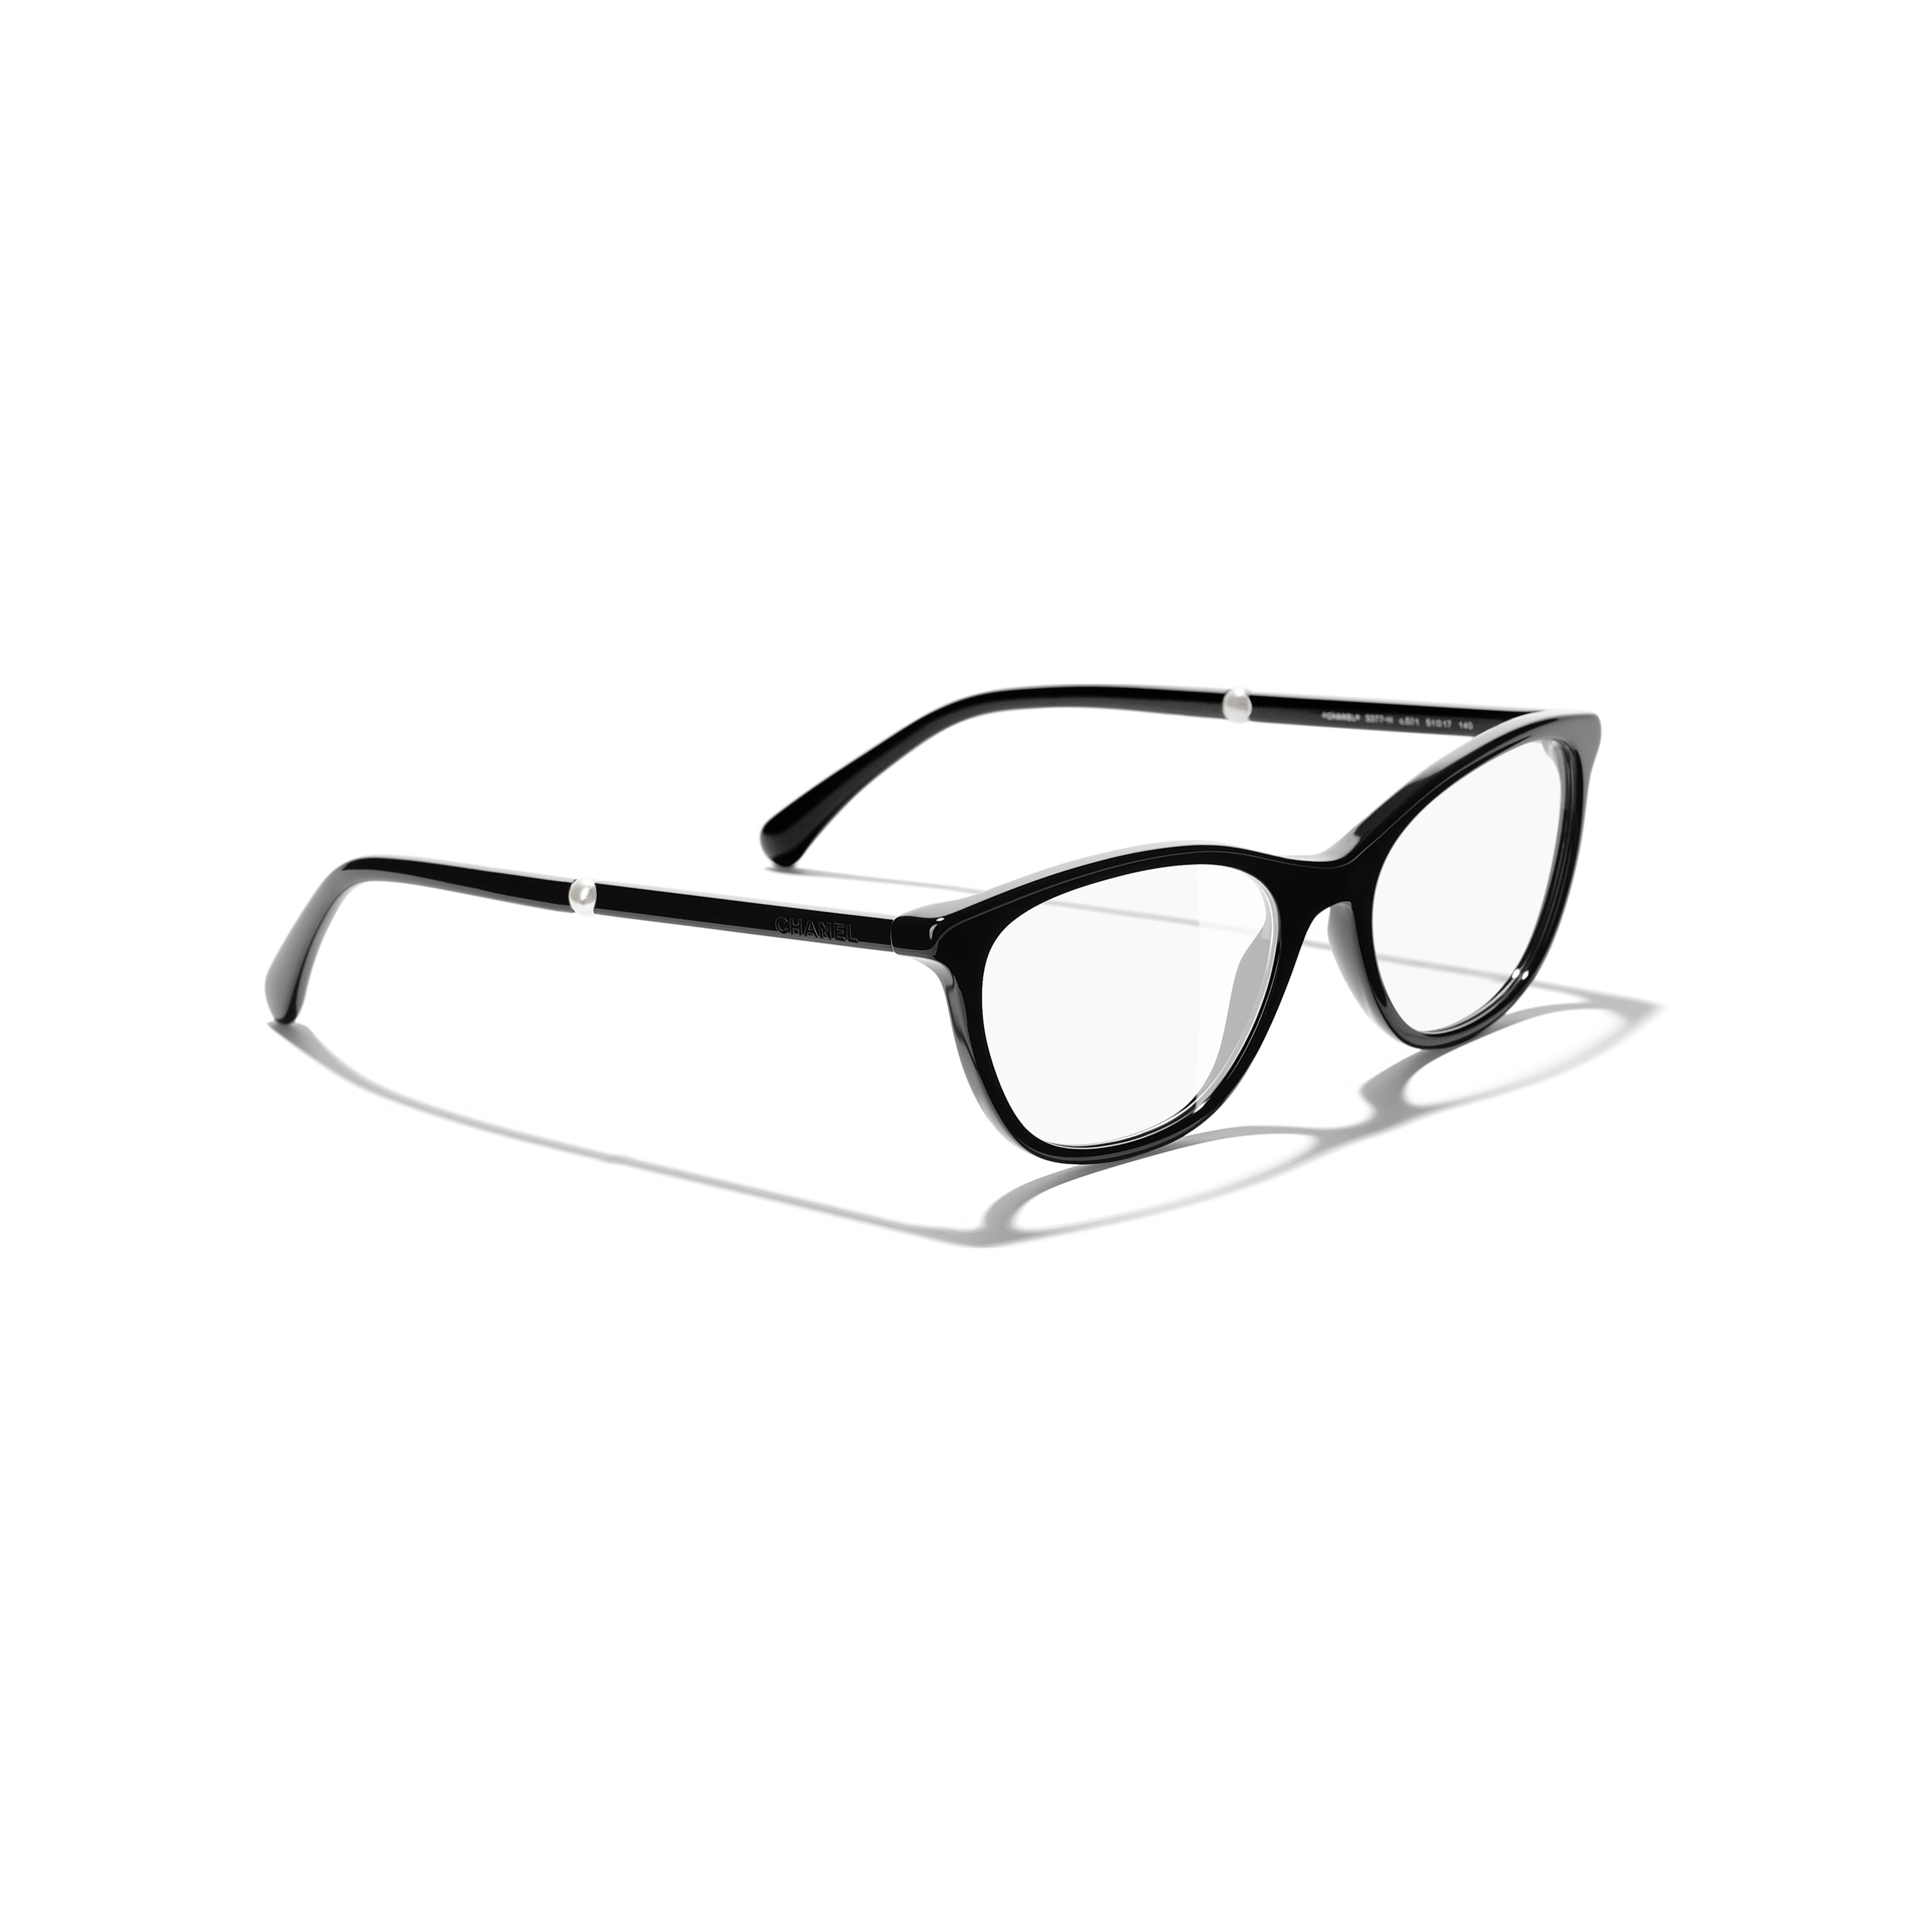 Rectangle Eyeglasses - Black - Acetate & Imitation Pearls - CHANEL - Extra view - see standard sized version